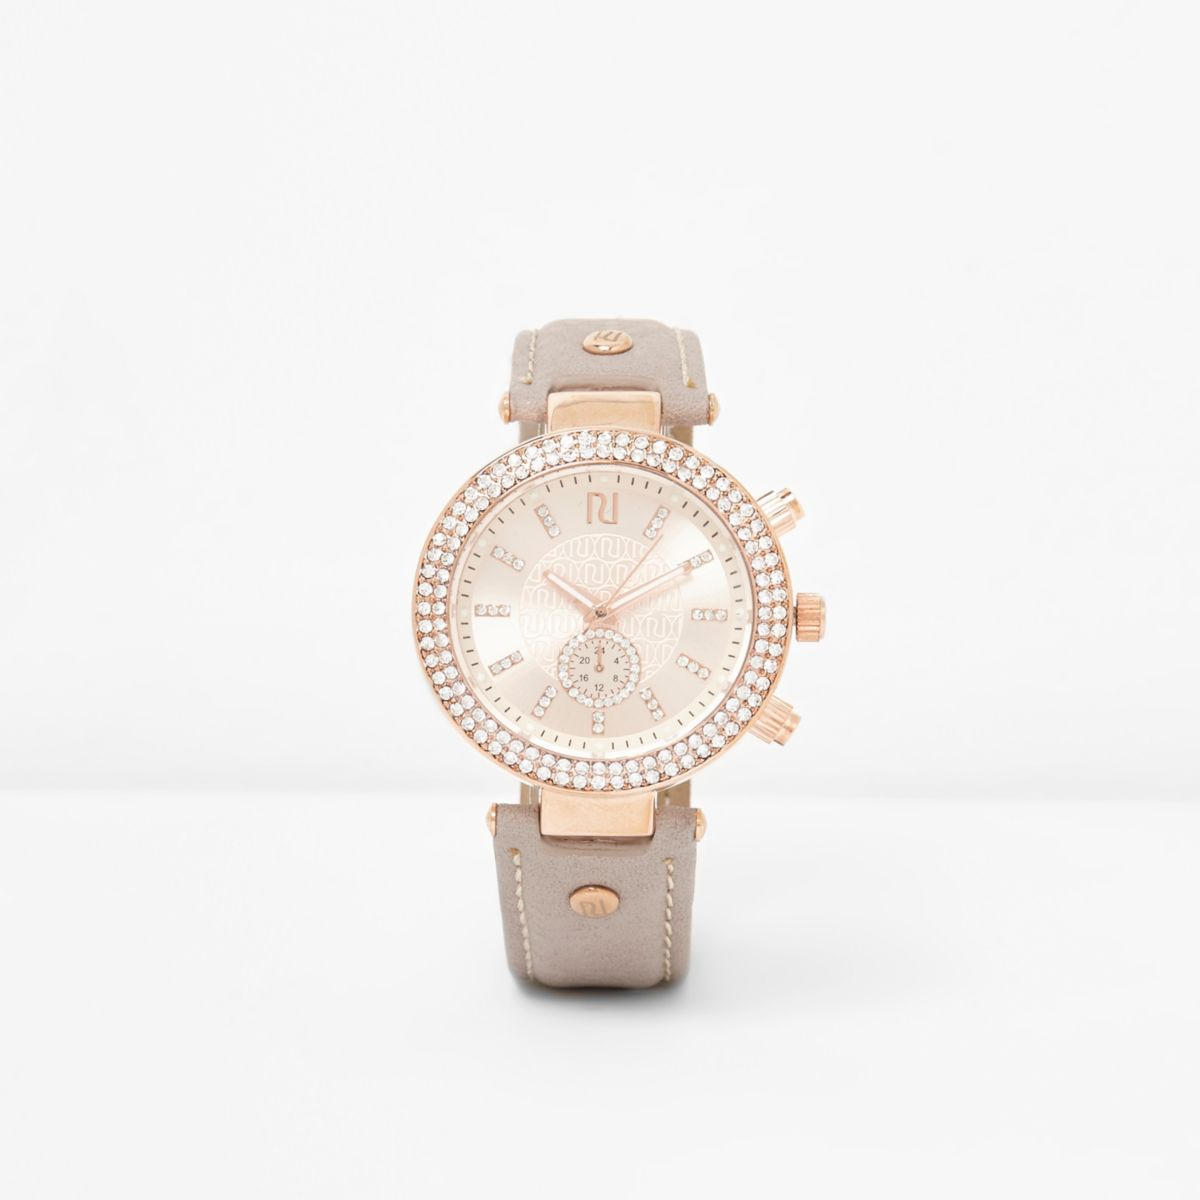 Light grey and rose gold tone diamante watch